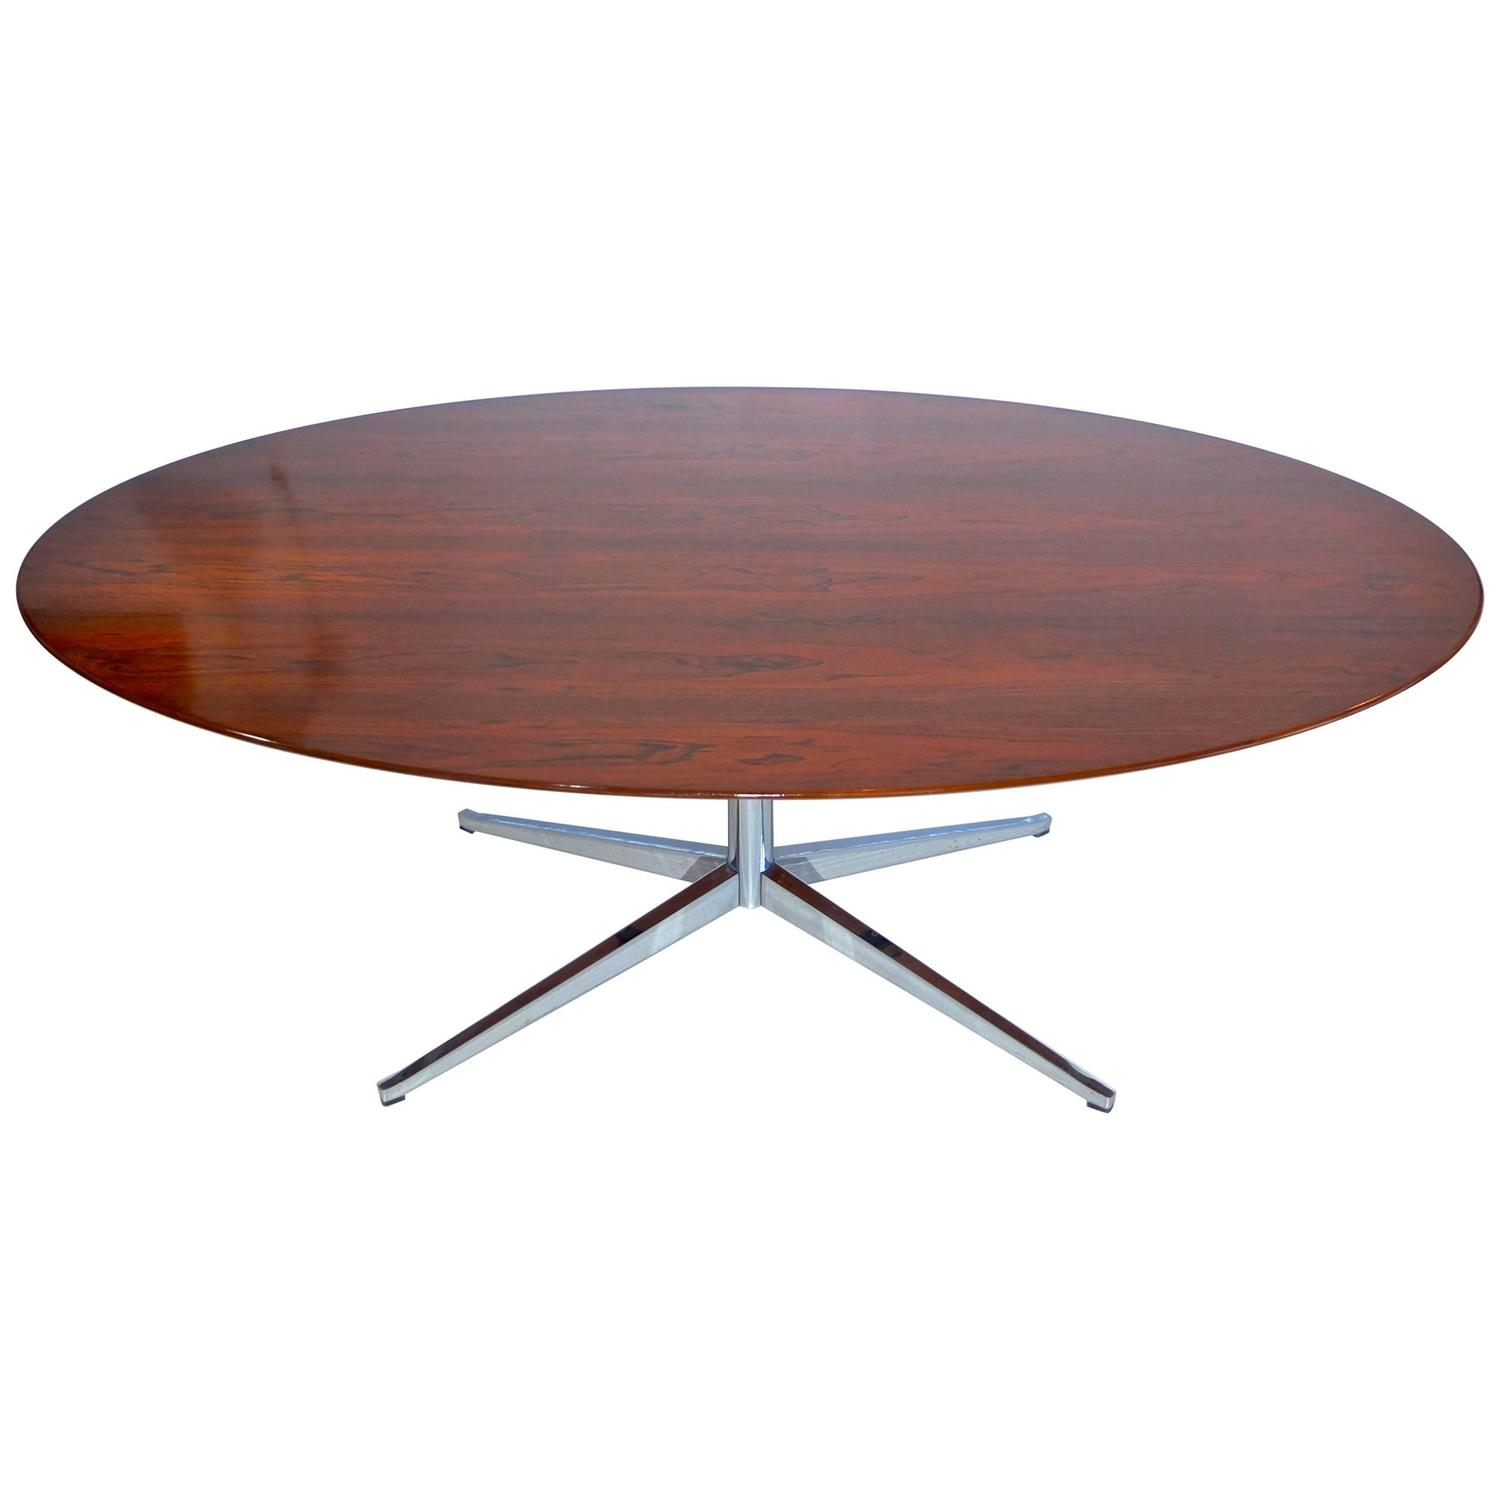 Brazilian Rosewood Elliptical Oval Executive Table Desk By Florence